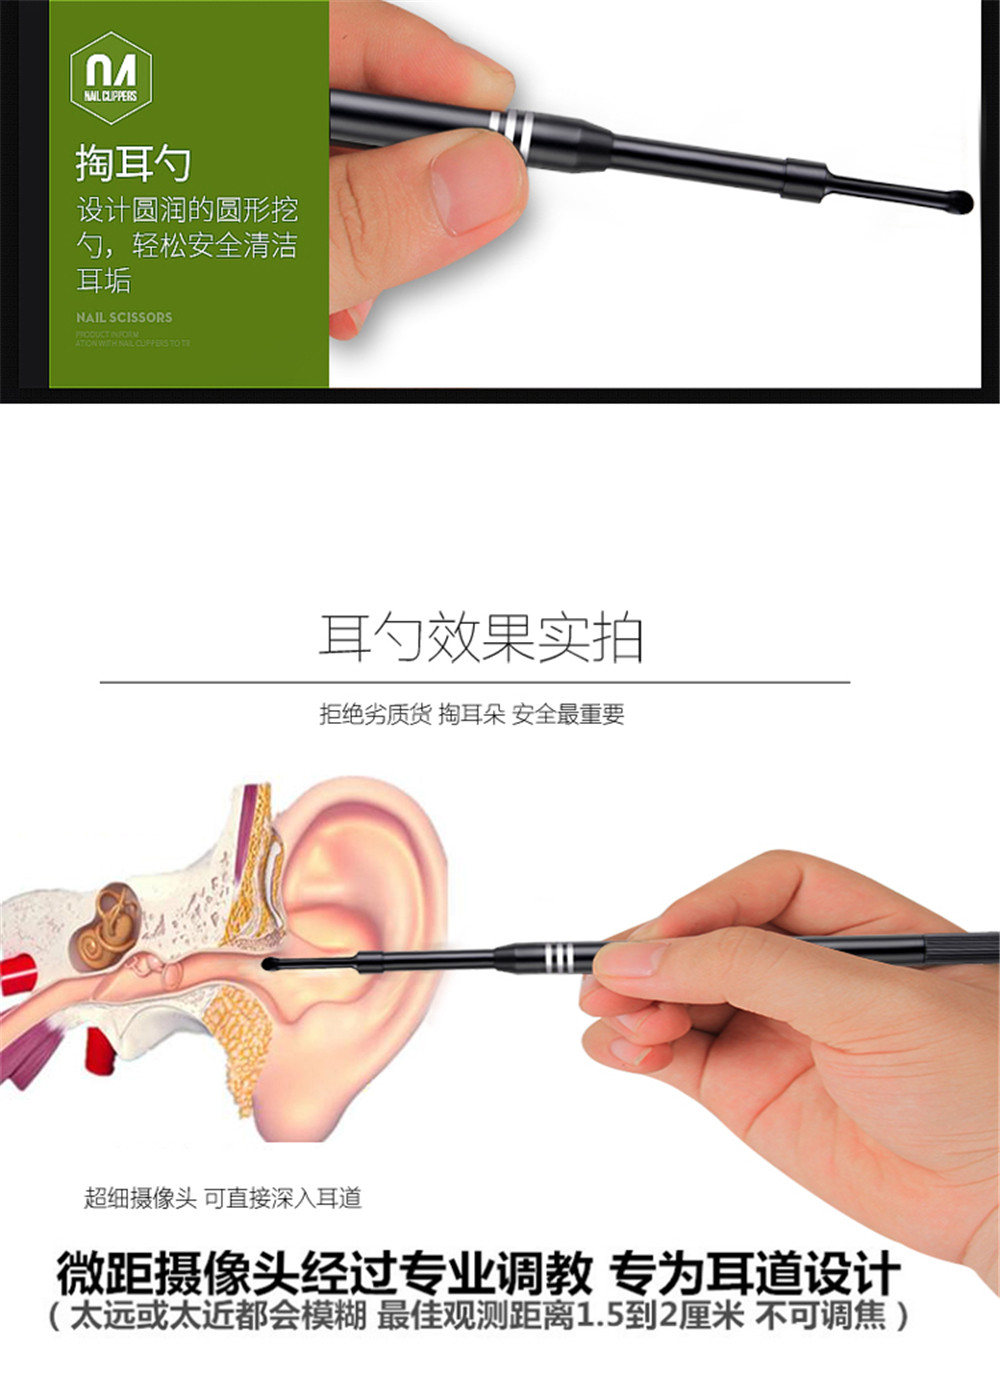 FGHGF 5.5mm 2-in-1 Endoscope Ear Cleaning USB Visual Ear Spoon Earpick Otoscope Endoscope Borescope Mini Camera Android PC blessfun 2 in 1 professional diagnostic medical ear eye care led fiber otoscope ophthalmoscope tool sets